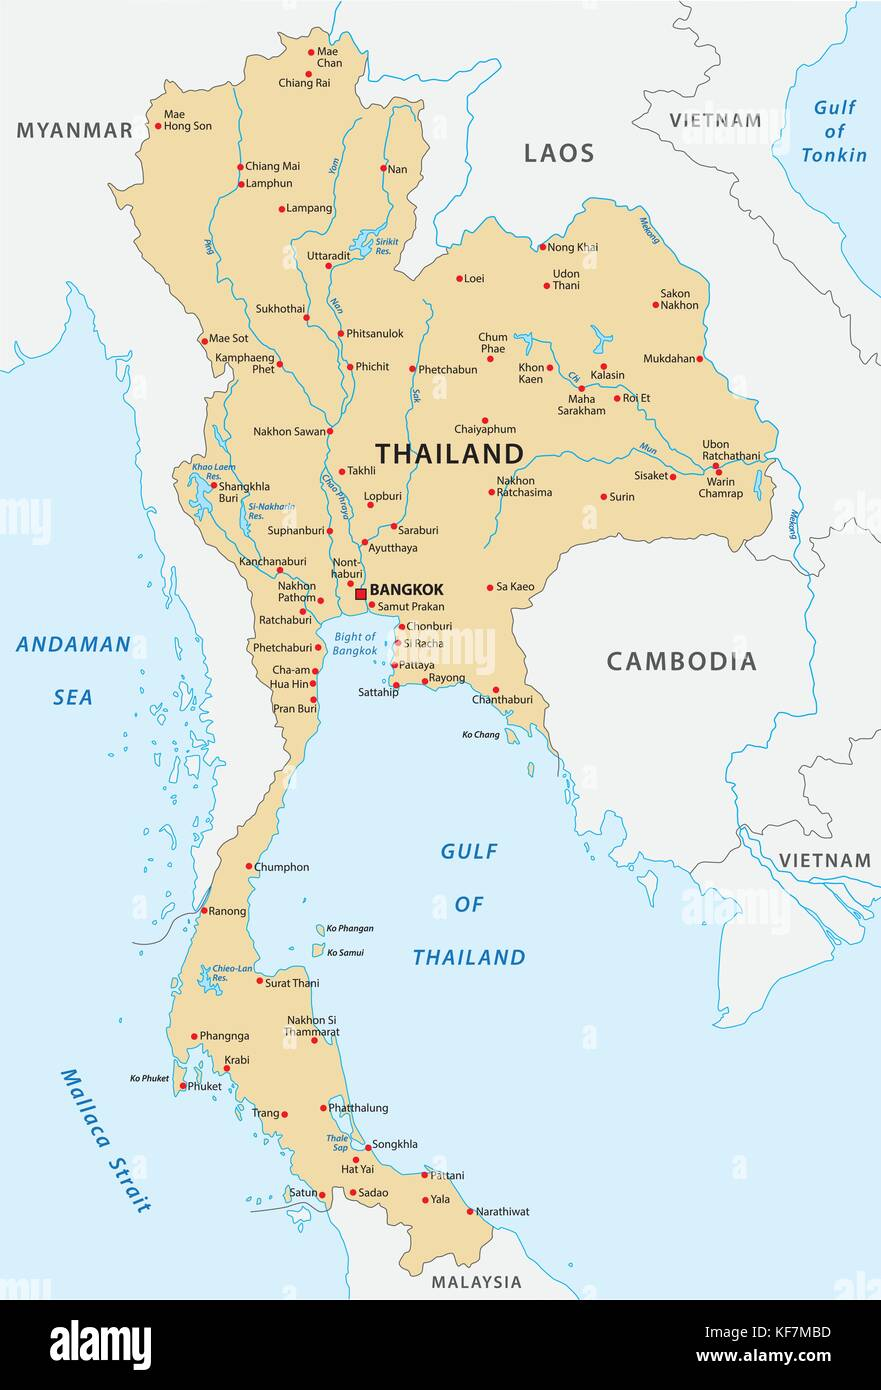 Thailand Map Stock Vector Images - Alamy